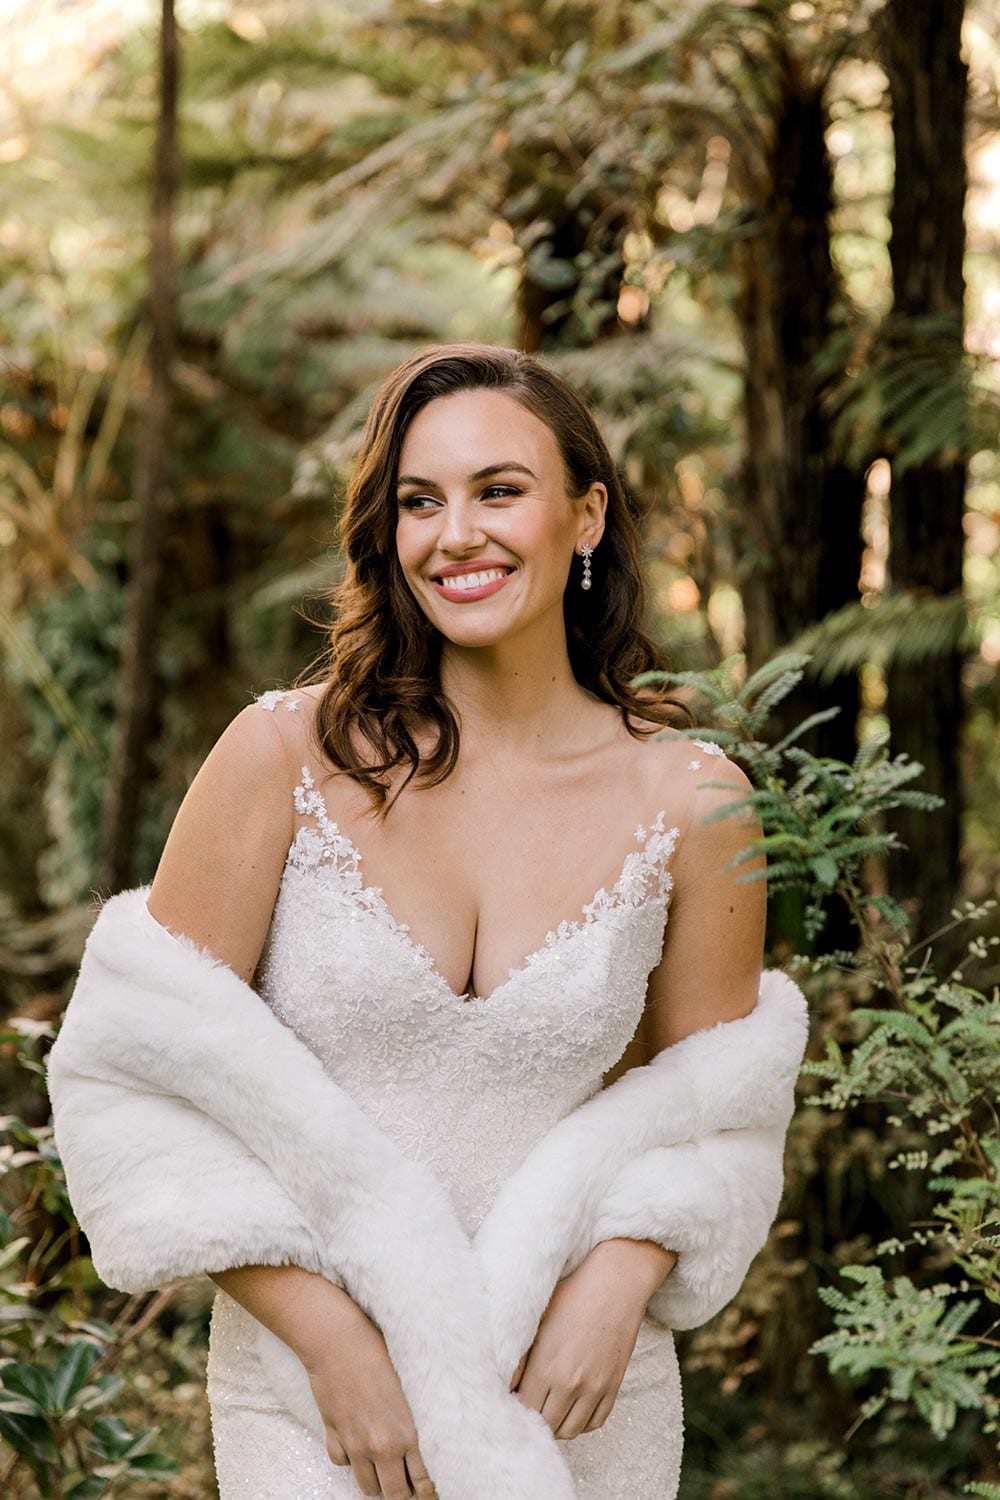 Dakota Wedding Dress from Vinka Design. This full-lace wedding dress is form fitting, sculpting the body beautifully. Delicate beaded lace flowers are hand-appliqued up the sheer nude tulle straps on both the front & back. Bodice with detail and snug, photographed at Tui Hills by Emmaline Photography.